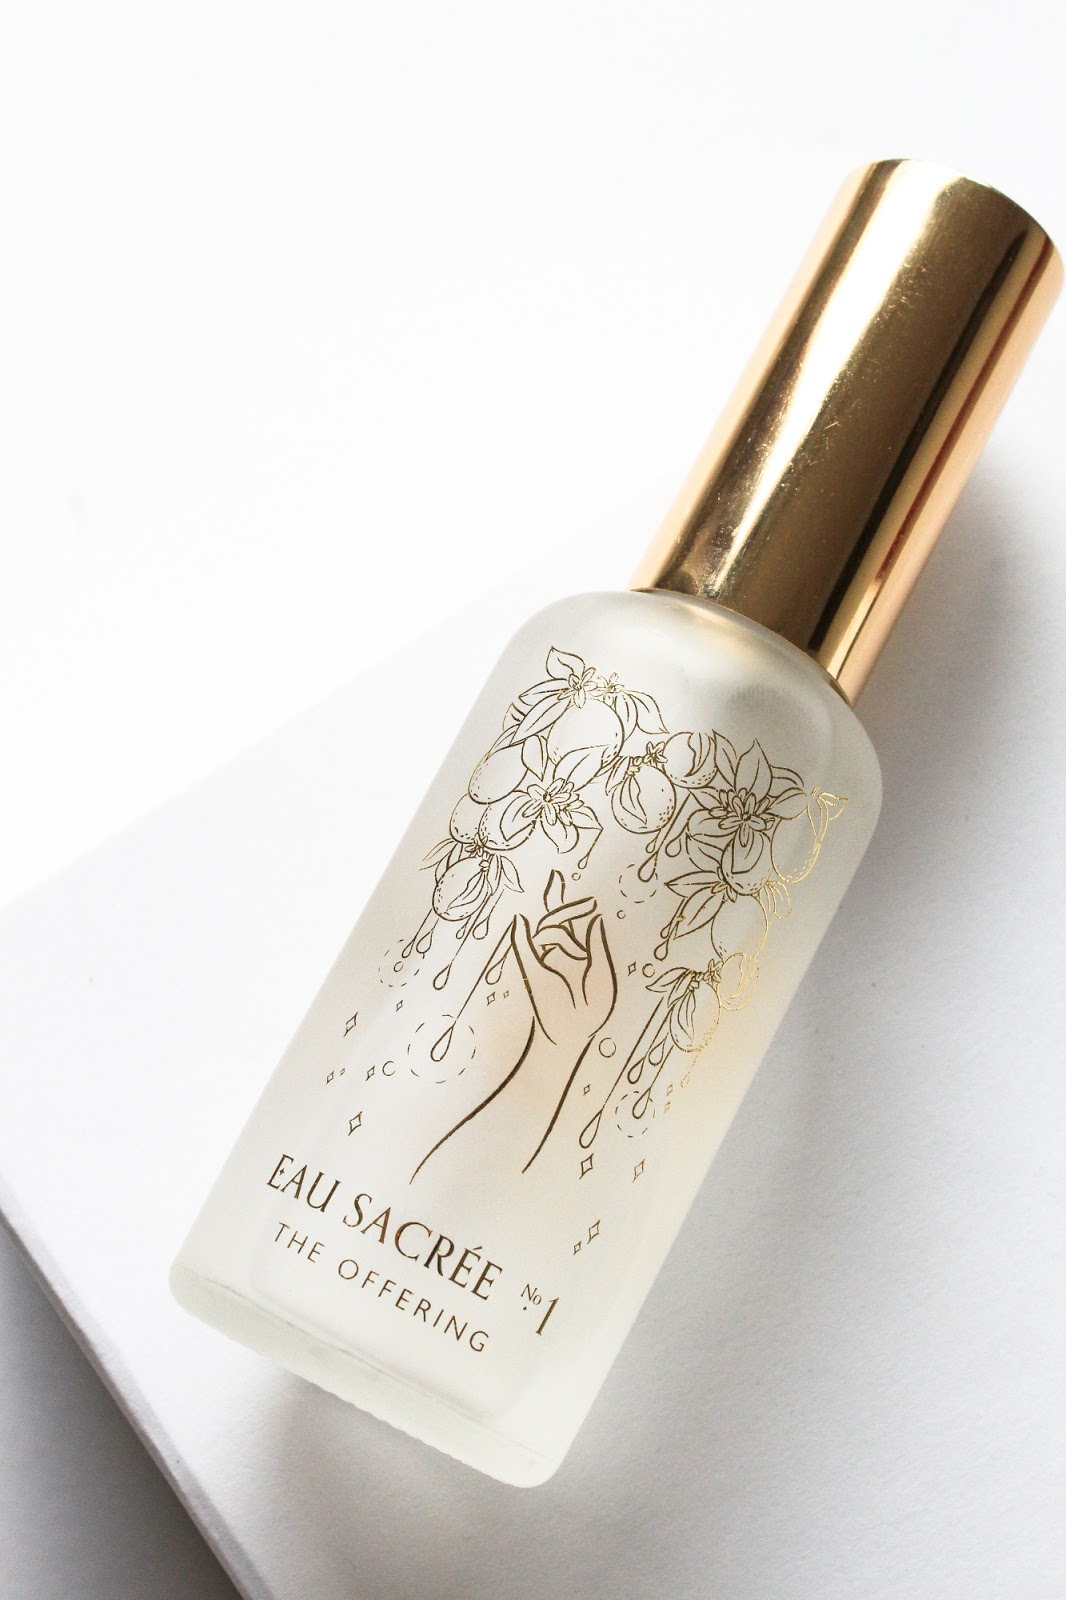 Wabi Sabi Botanicals Indie Beauty Spotlight Discovery Limited Edition Beauty Heroes The Offering Ageless Ritual Face Mist